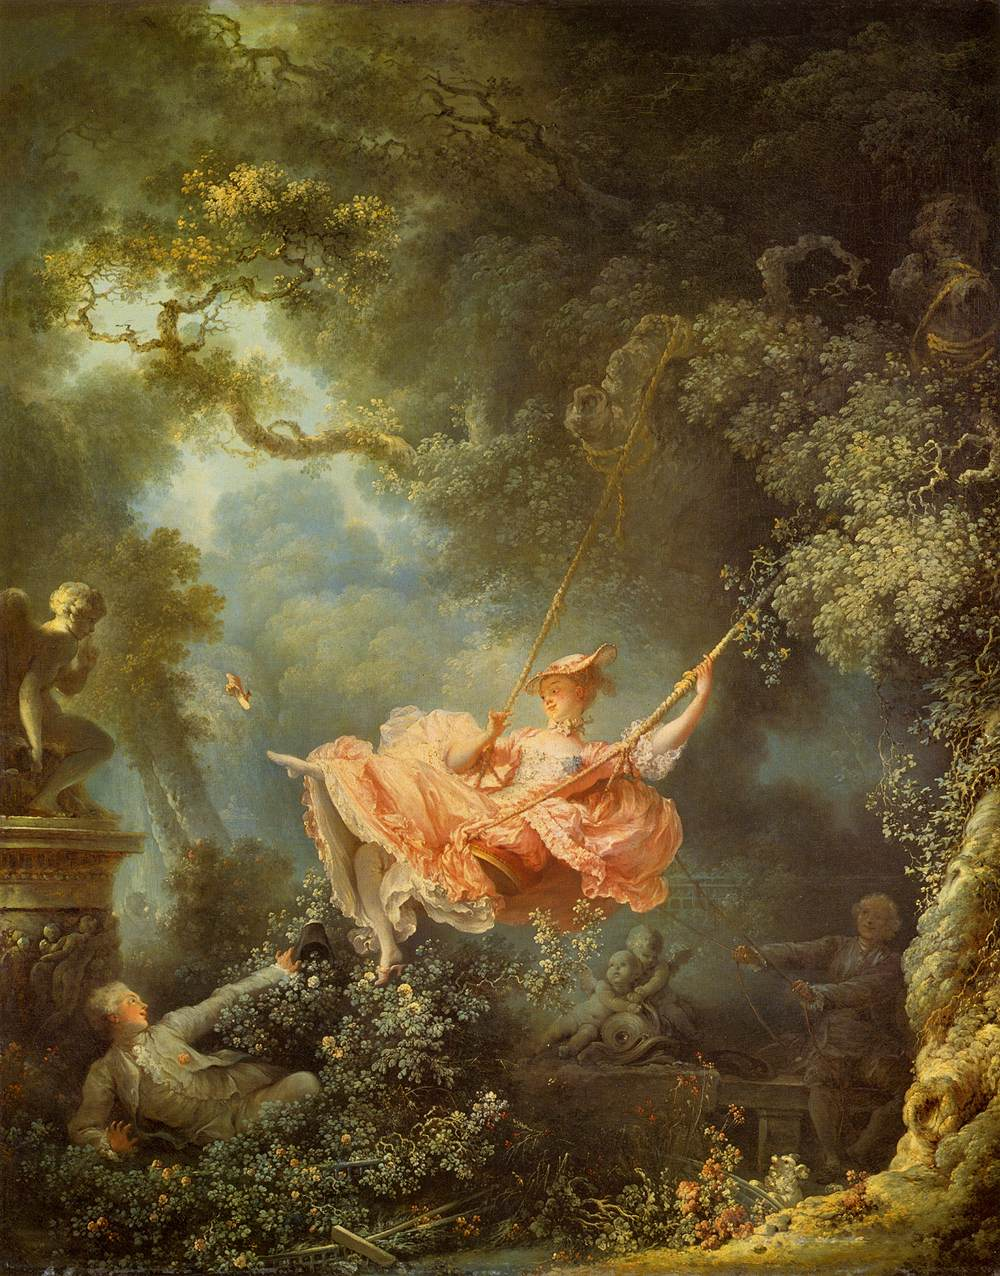 https://upload.wikimedia.org/wikipedia/commons/4/42/Jean-Honor%C3%A9_Fragonard_-_The_Swing_-_WGA08061.jpg